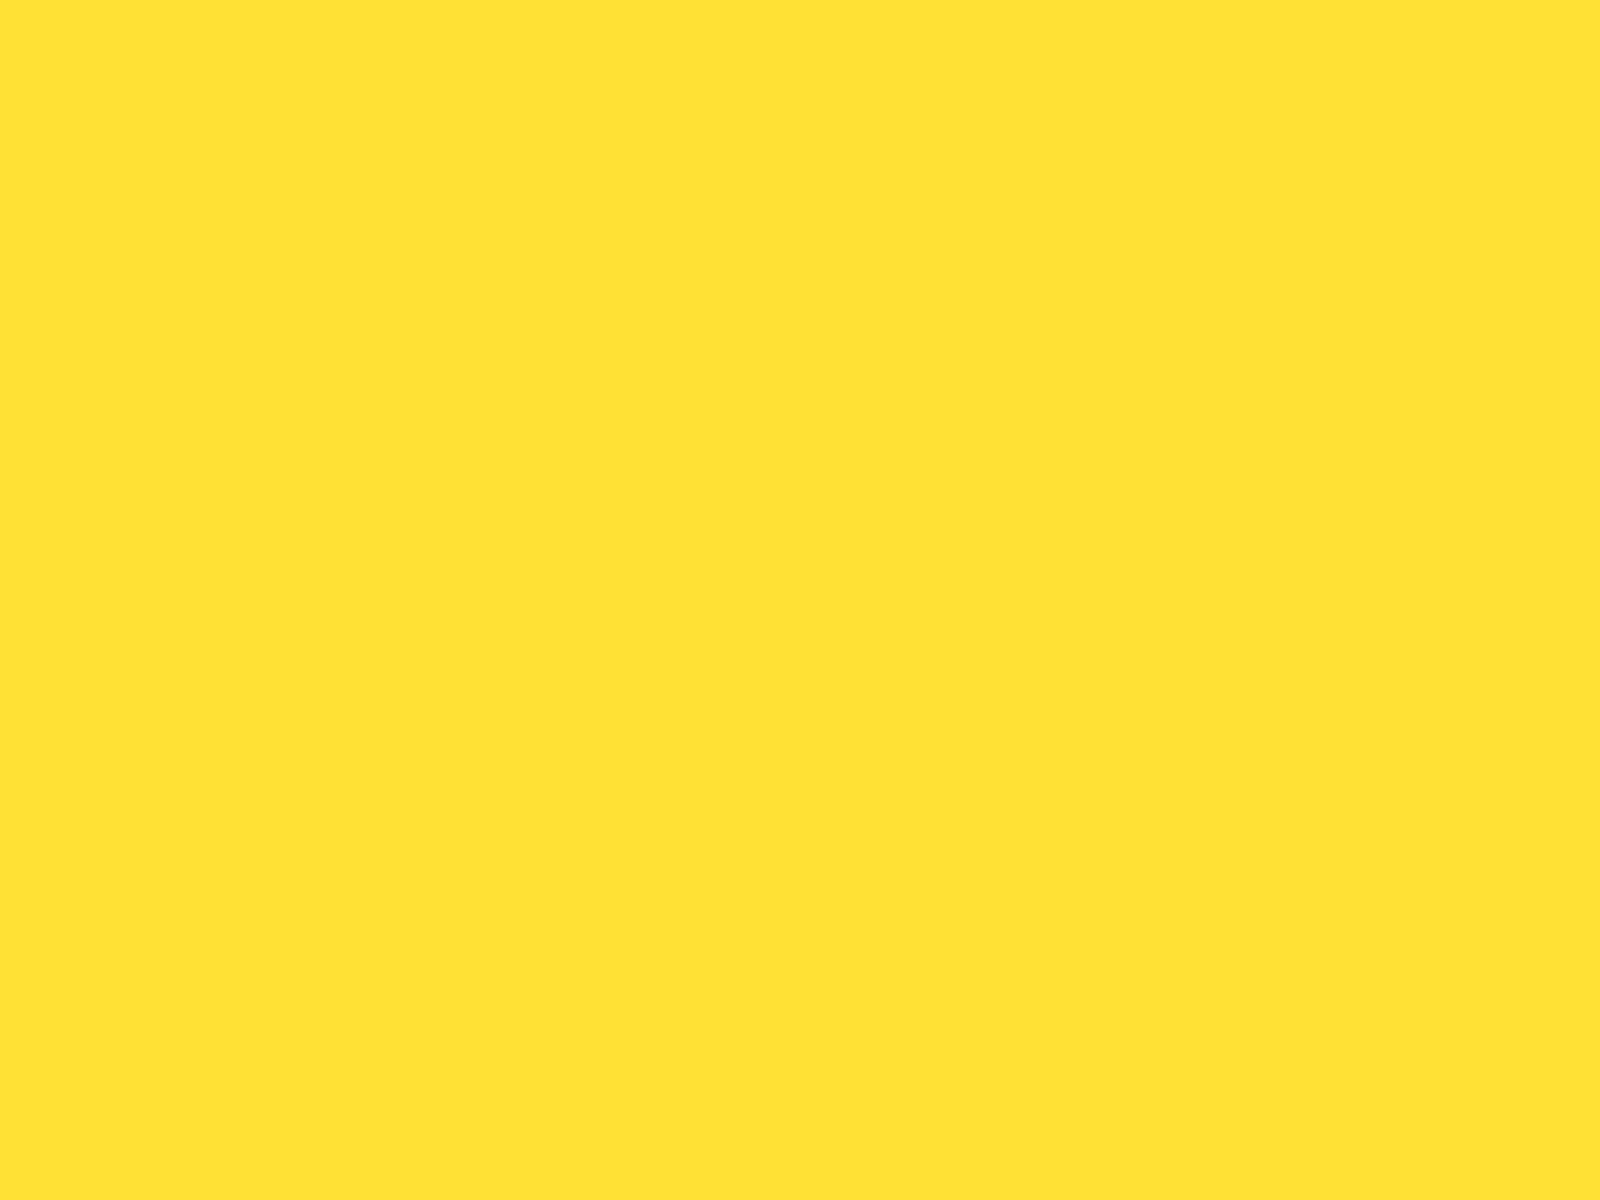 1600x1200 Banana Yellow Solid Color Background